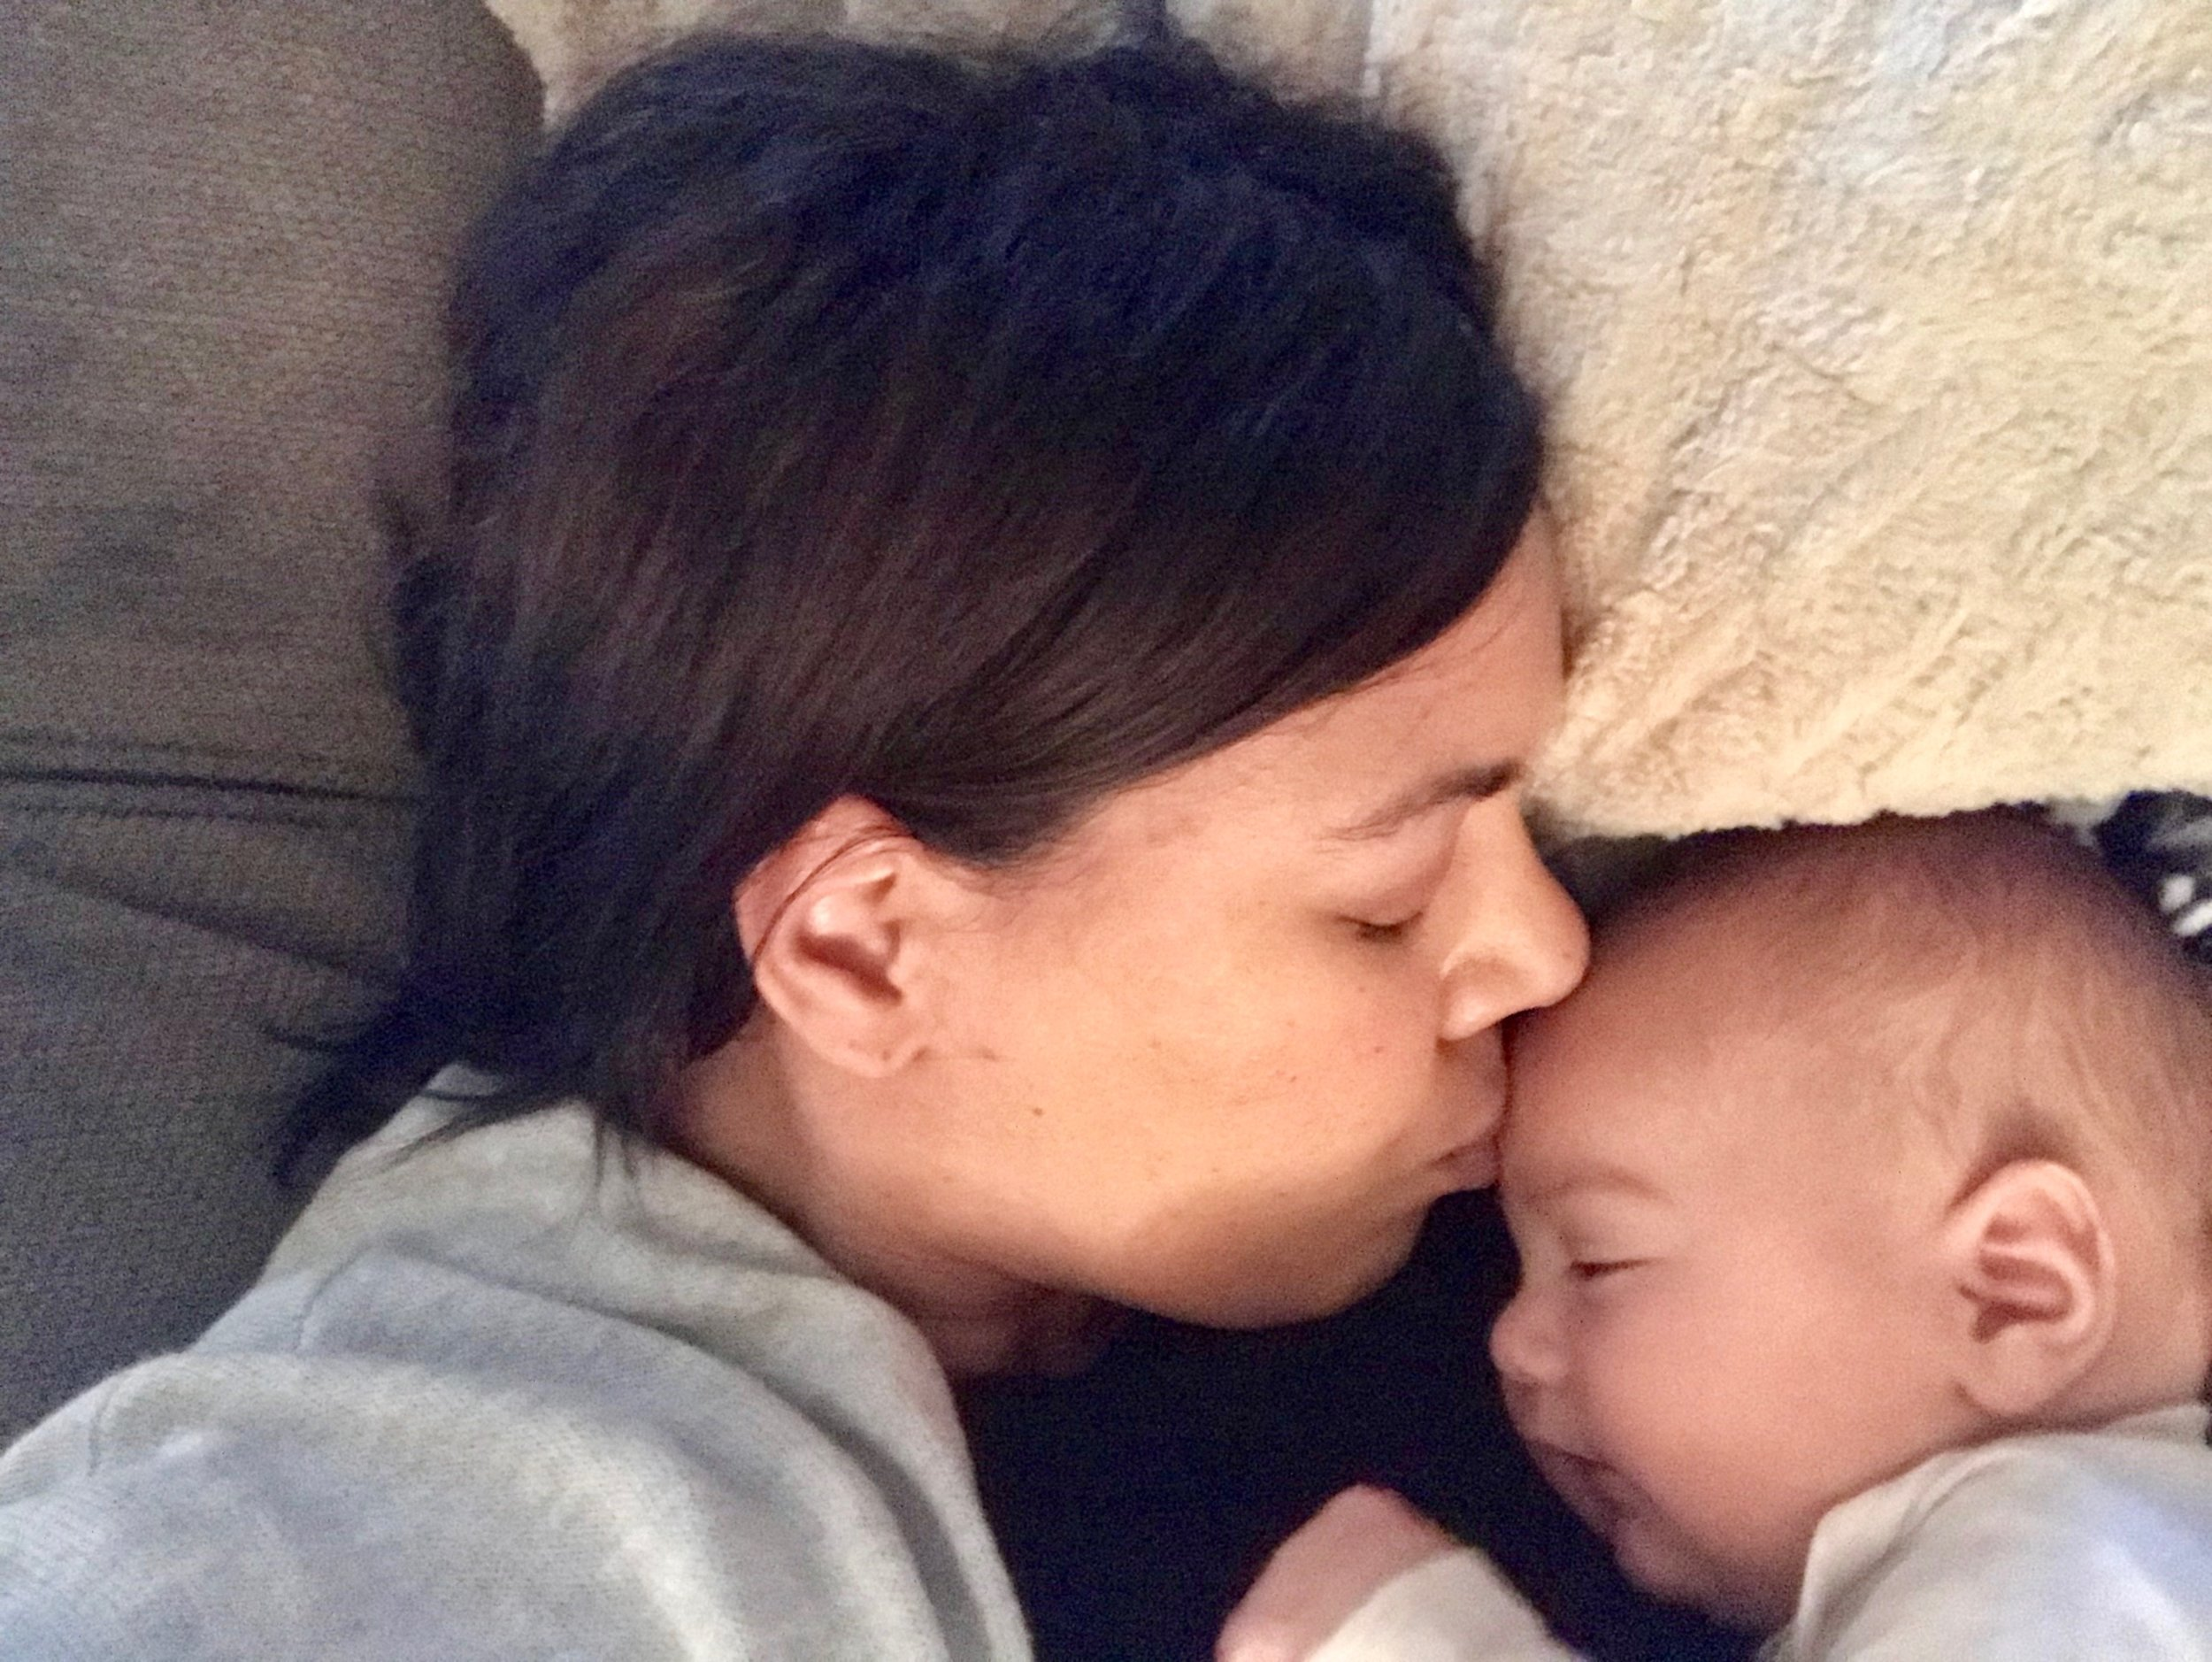 10 Ways to Support the Postpartum Mom - All moms need support after baby comes, but oftentimes well-wishers are unsure of the right kind of help and how to offer it. Check out our 10 essential tips to support a mom with a new baby and help her feel loved and supported.